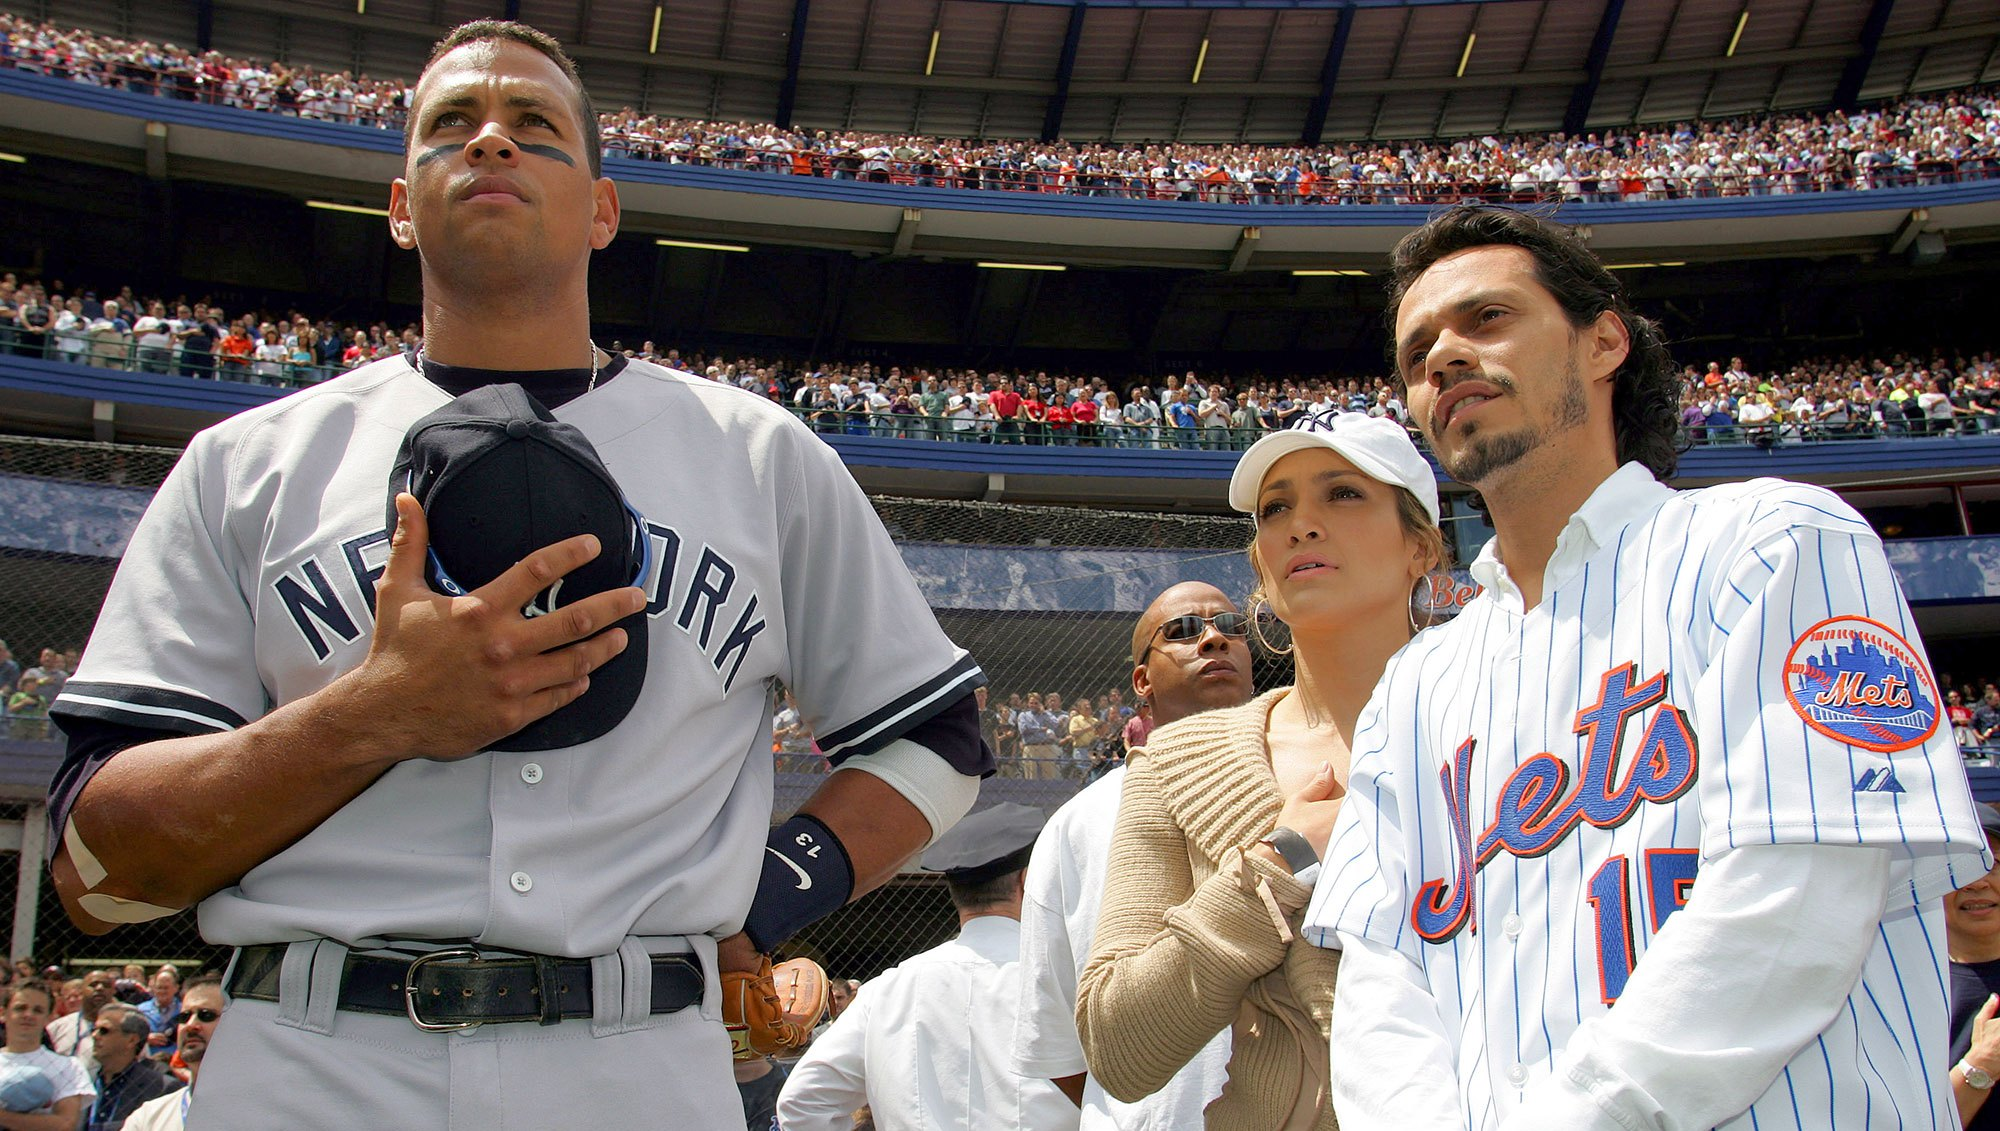 Old Photo of Jennifer Lopez, Alex Rodriguez and Marc Anthony Becomes Meme After Engagement News